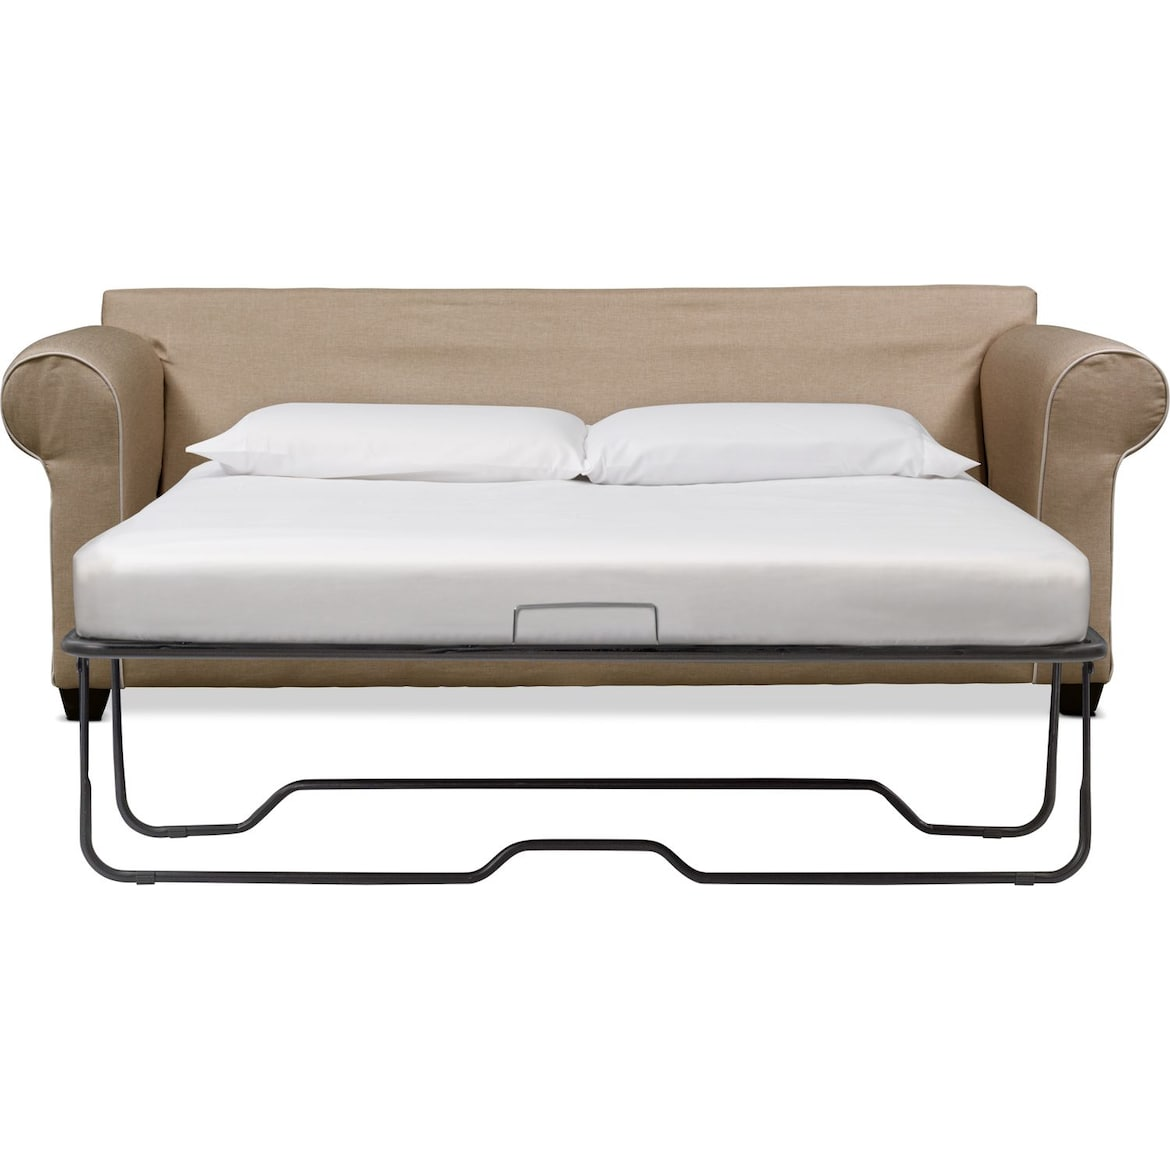 Carla Queen Innerspring Sleeper Sofa Beige Value City